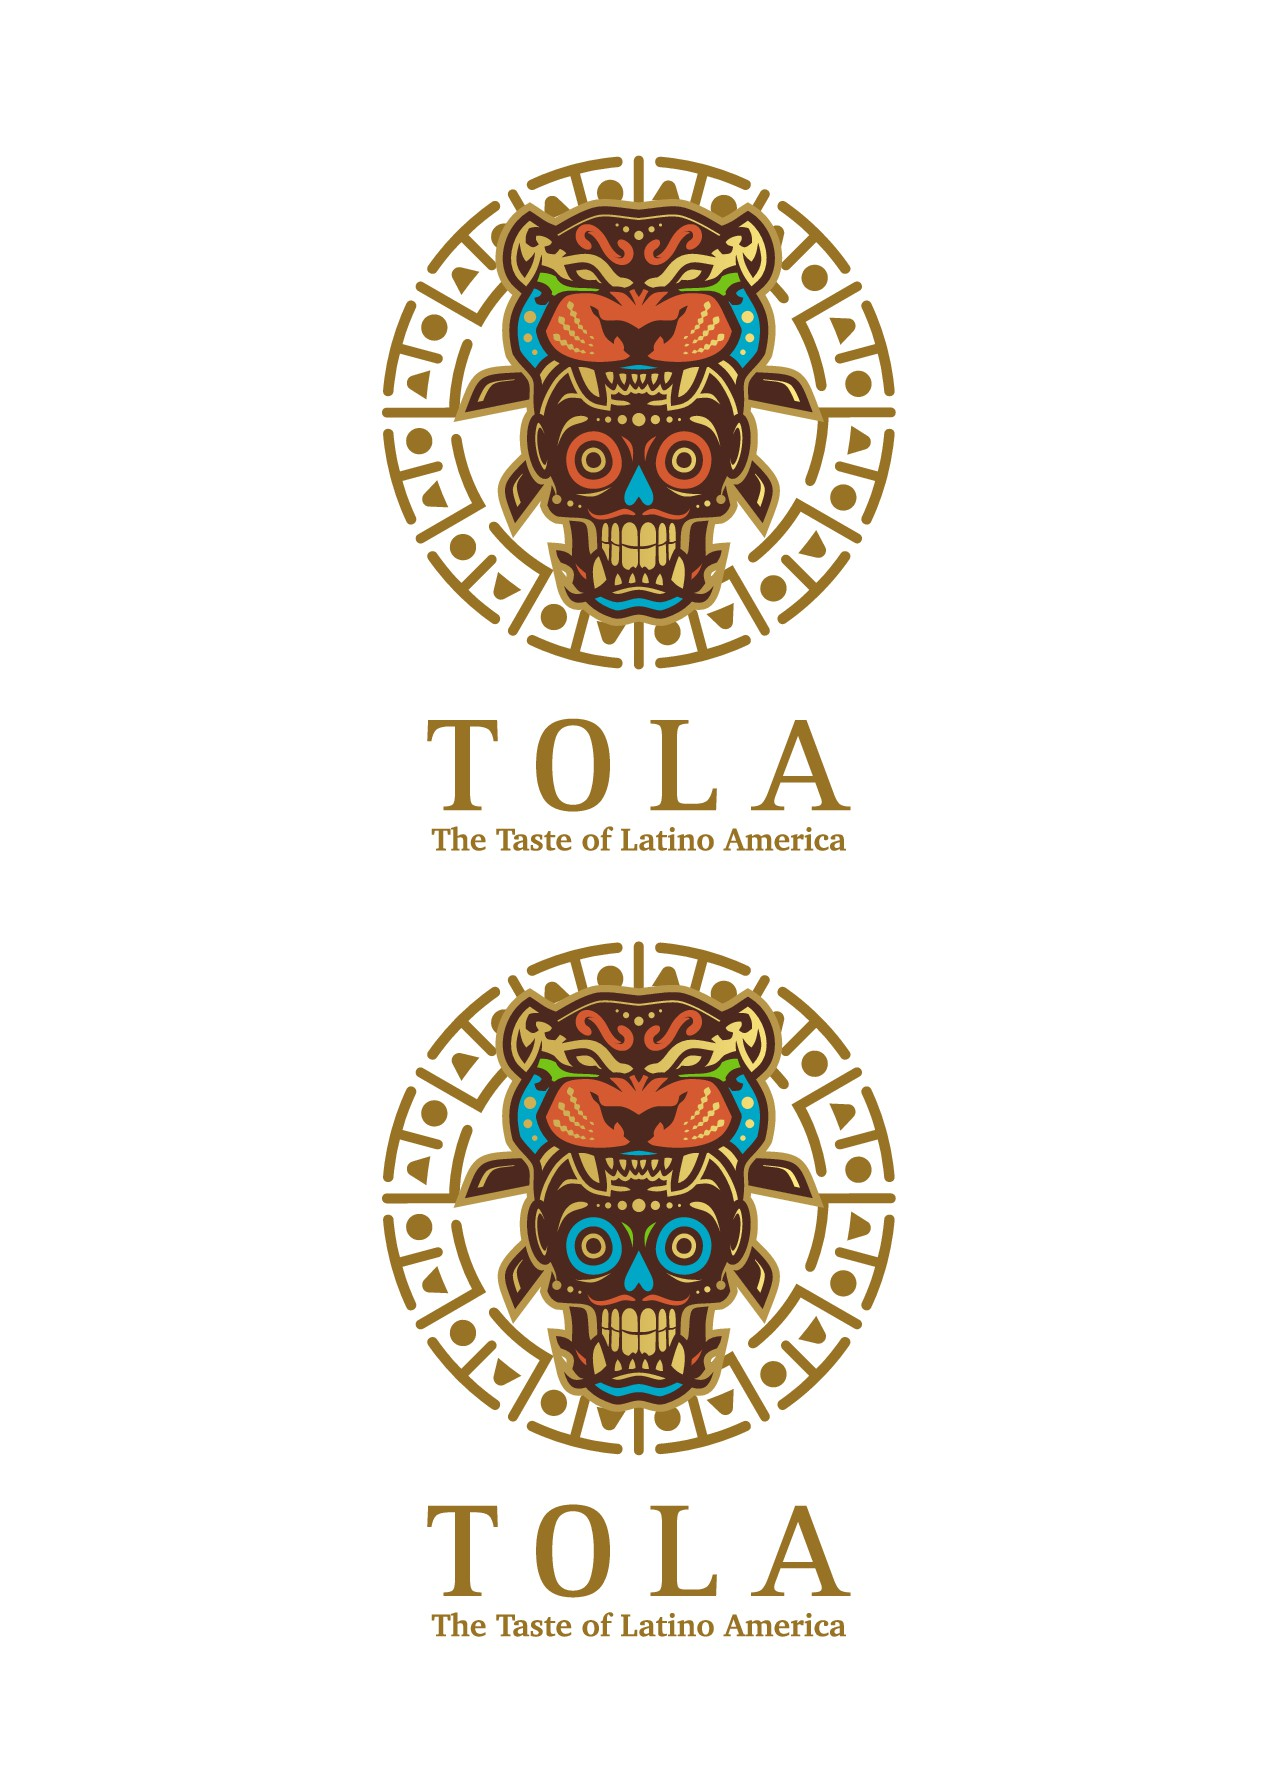 Design an Exotic and Exciting logo for a new Latin Fusion Restaurant